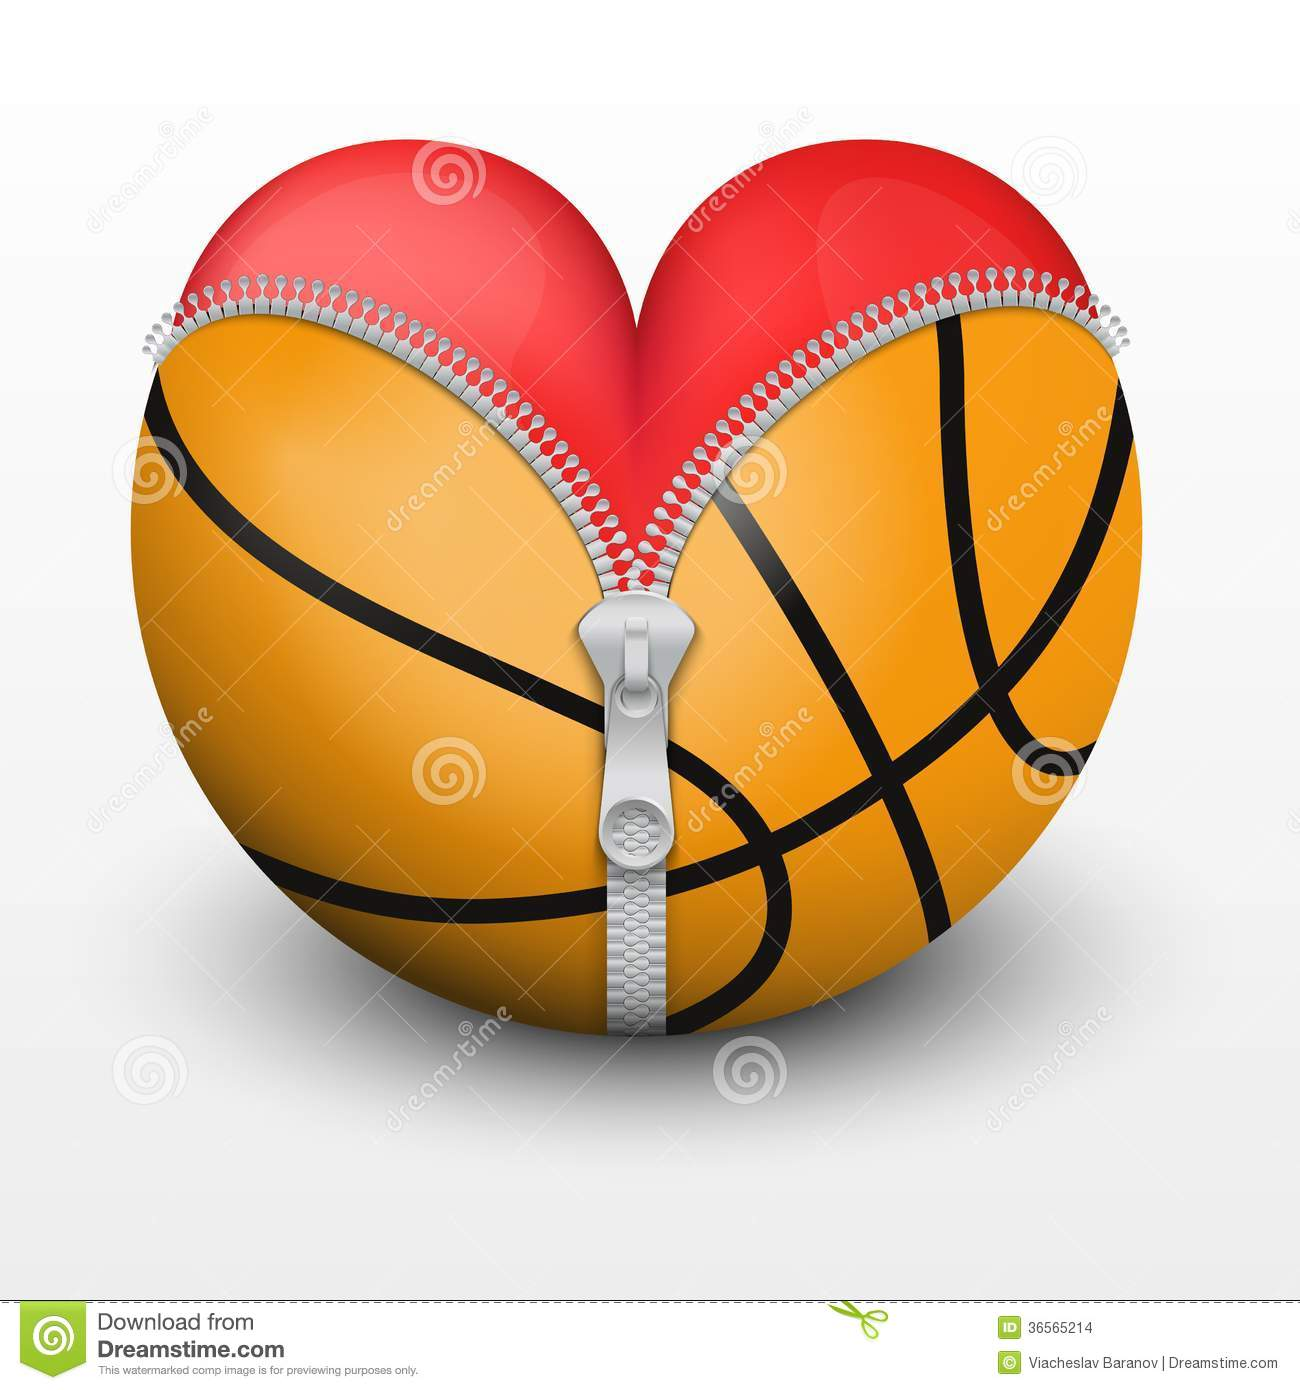 Love and basketball symbol